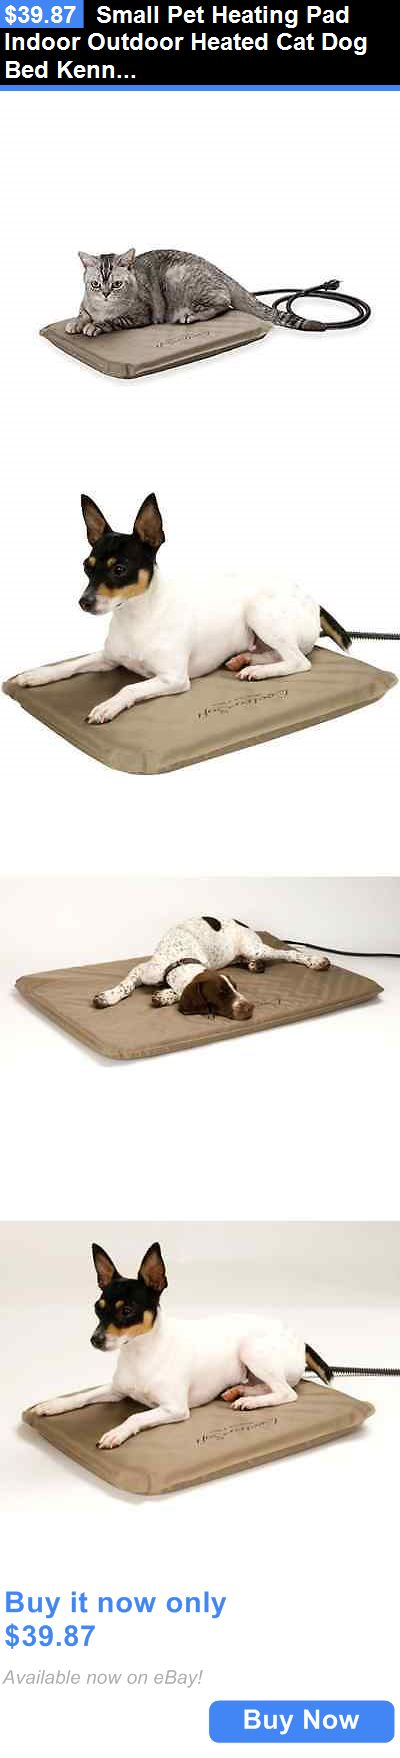 Animals Dog: Small Pet Heating Pad Indoor Outdoor Heated Cat Dog Bed Kennel Doghouse Heater BUY IT NOW ONLY: $39.87